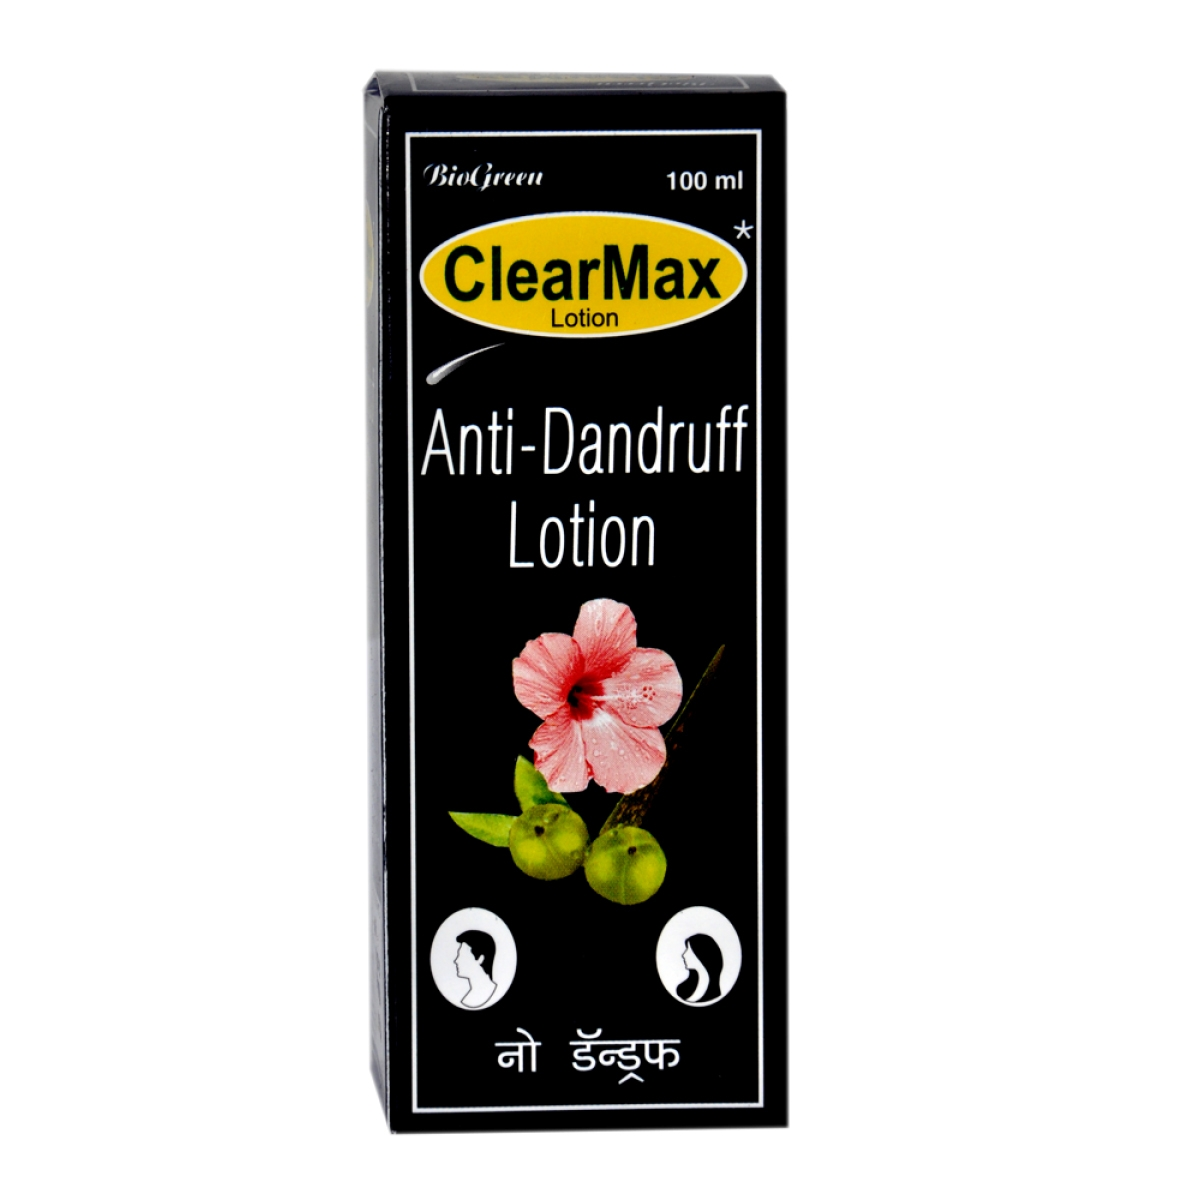 Clear Max Lotion In Karur